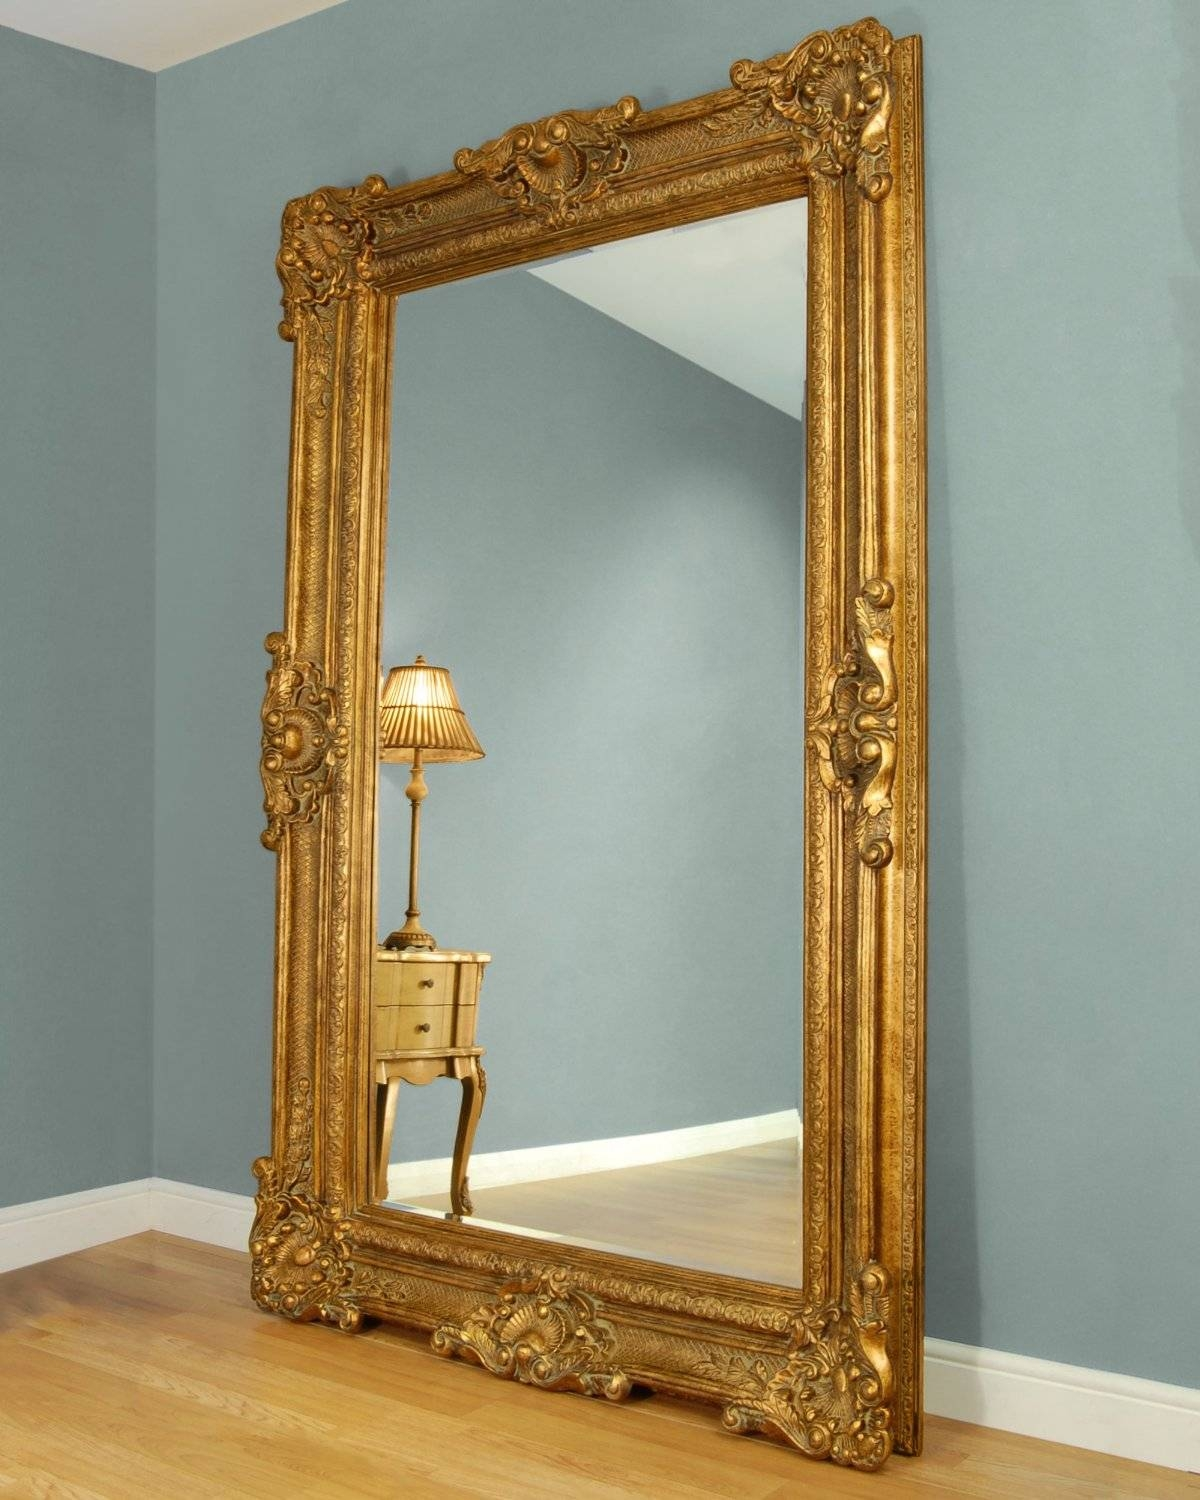 C&m Bridgewater Large Gold Framed Leaner Mirror | Blingby inside Ornate Leaner Mirrors (Image 5 of 15)